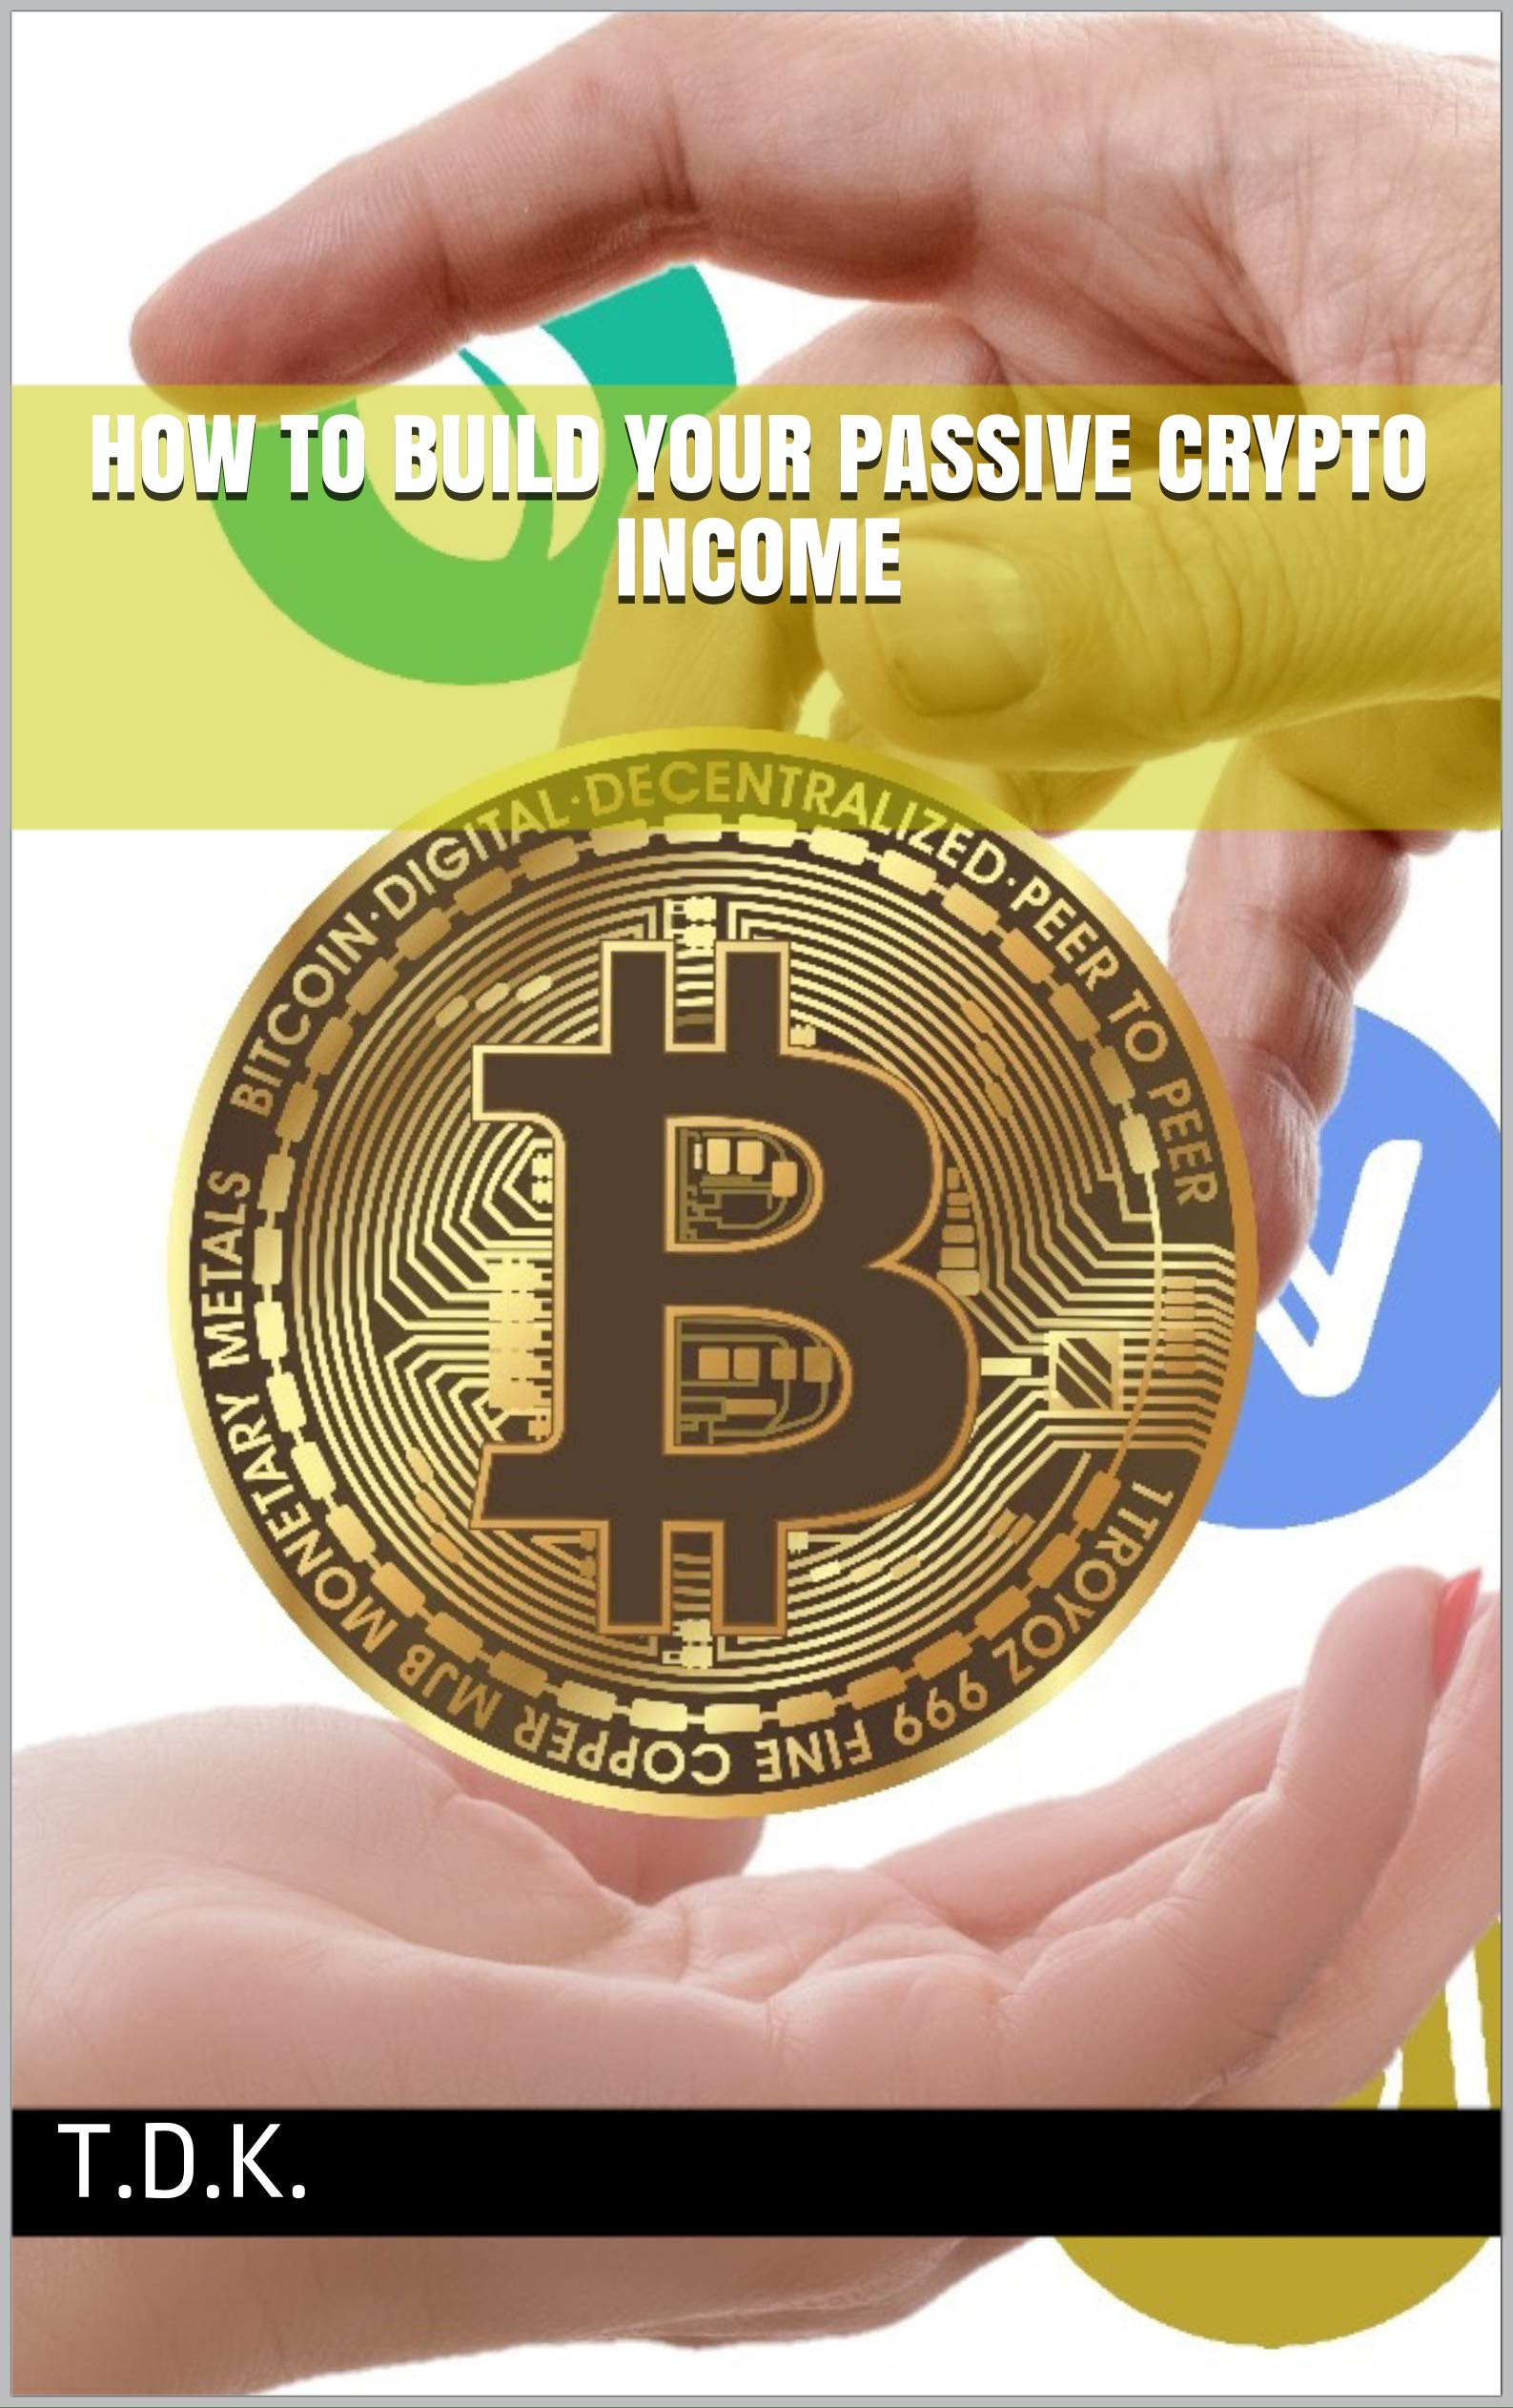 How to build your passive crypto income